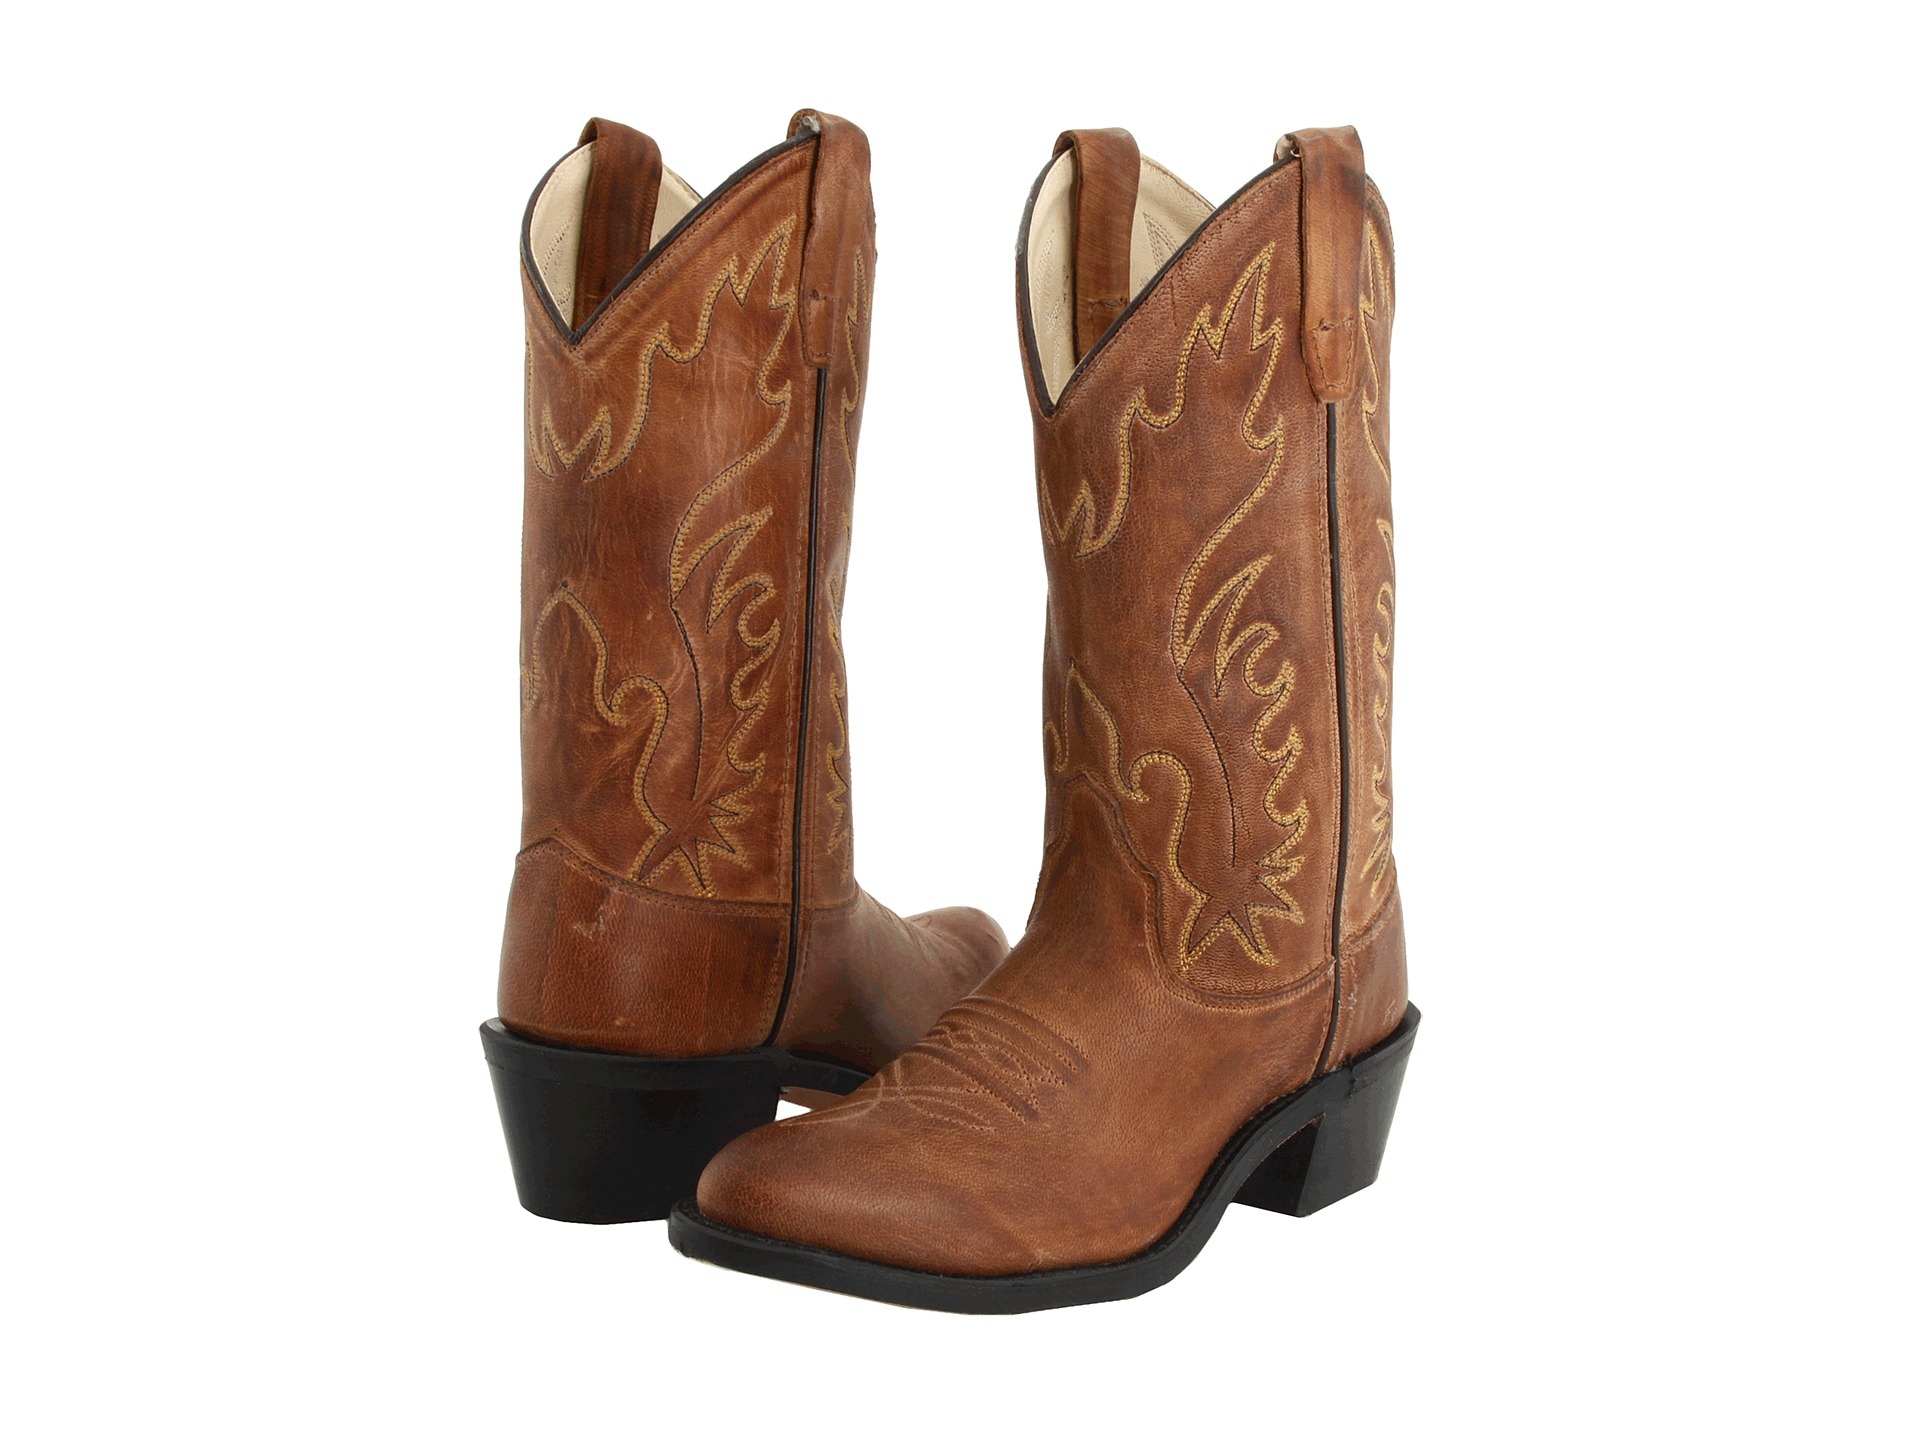 Cowboy Boots On Sale 8k26VTdW